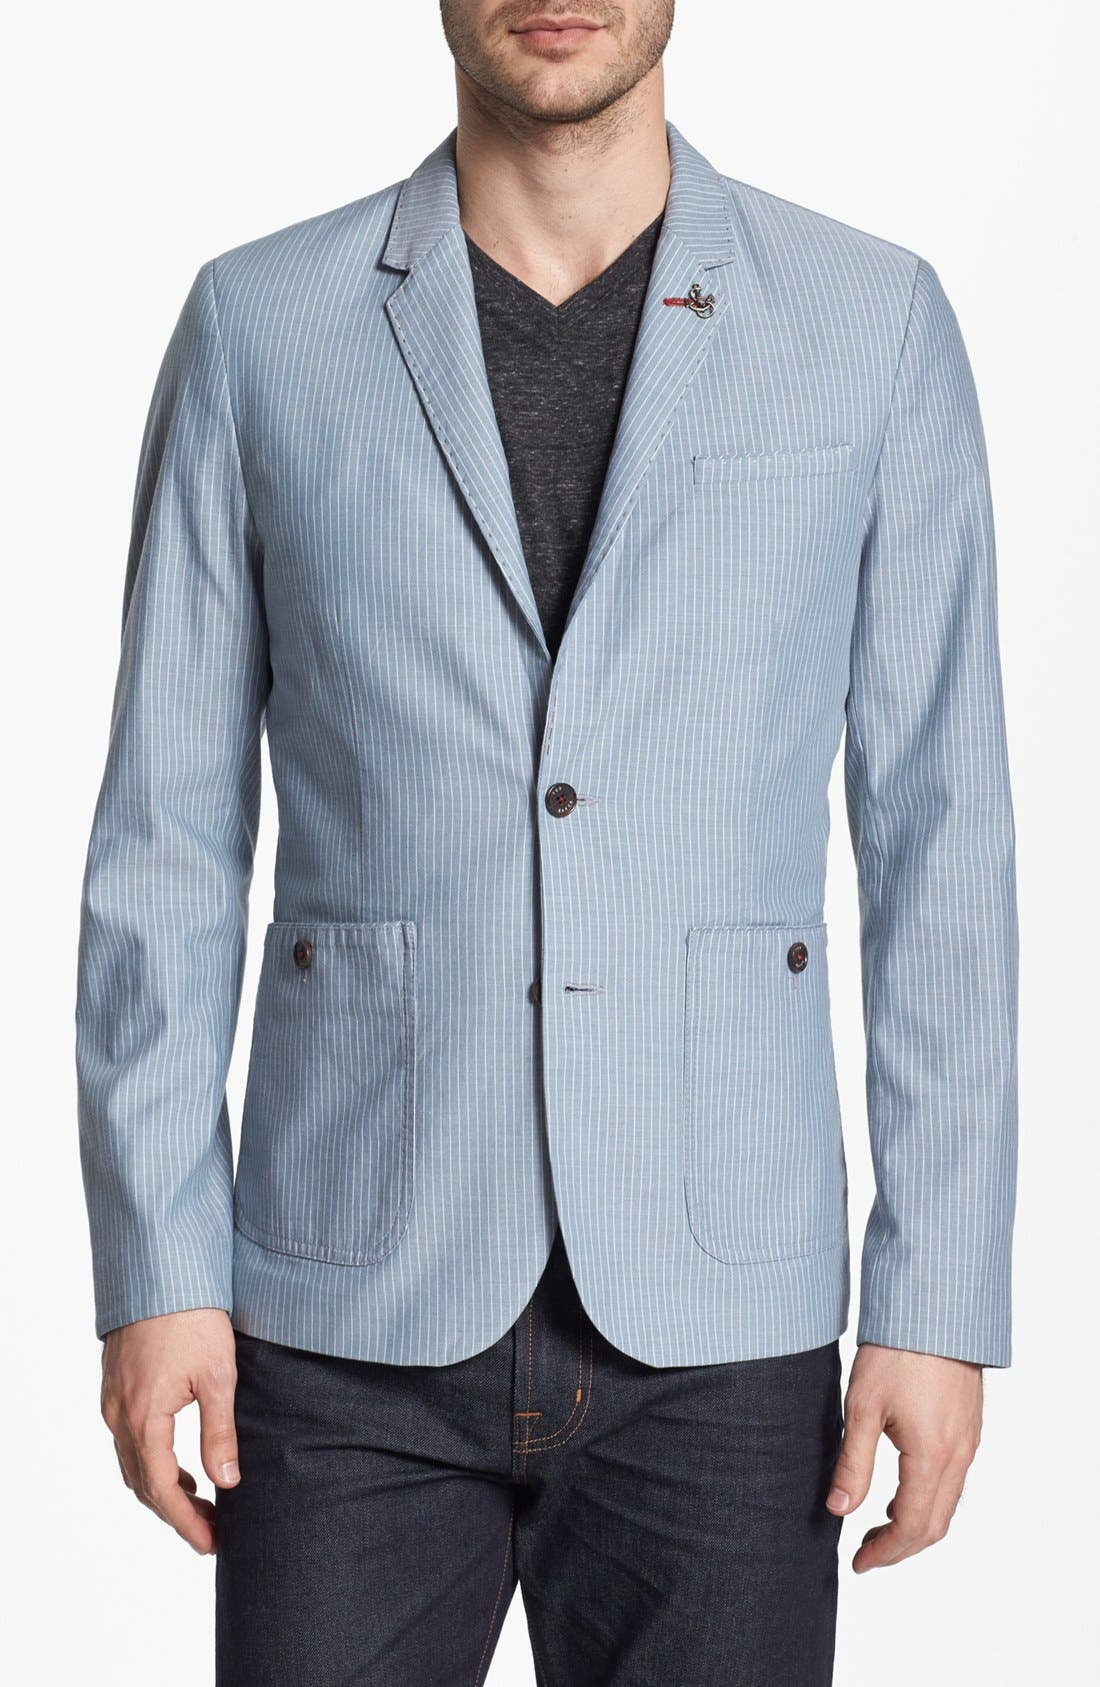 Main Image - Ted Baker London 'Greybak' Blazer